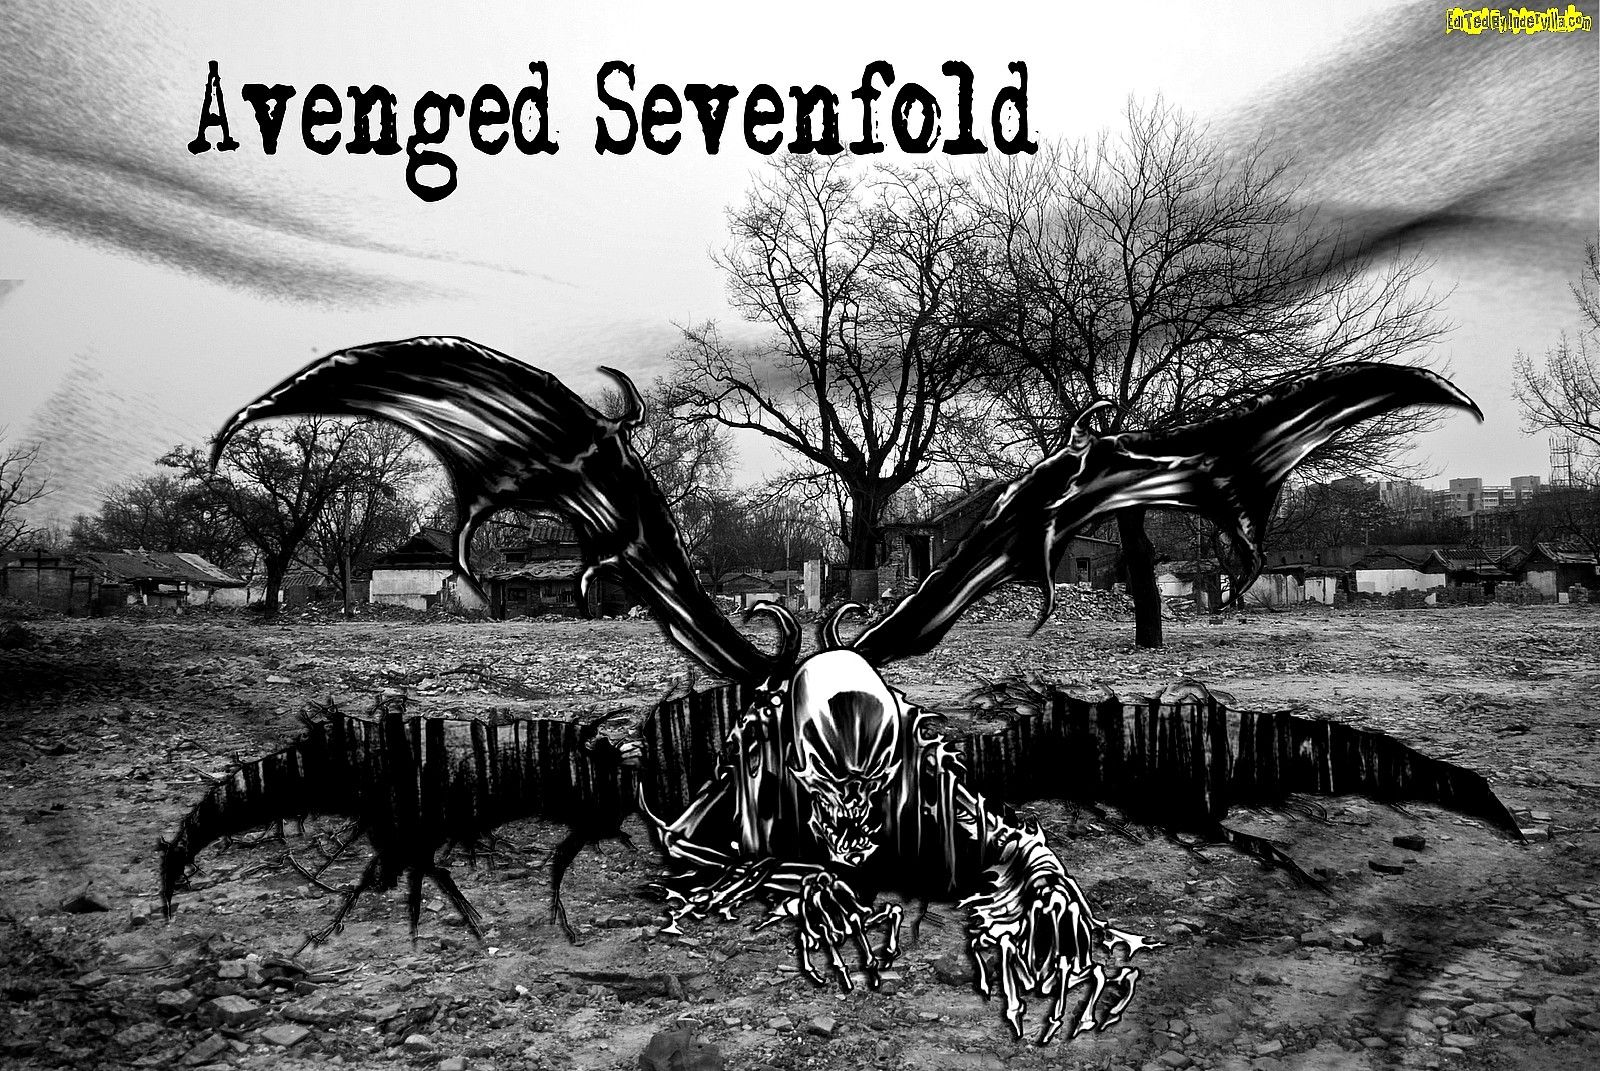 Avenged Sevenfold Hd Wallpaper 2376 Wallpapers HD colourinwallpaper 1600x1071